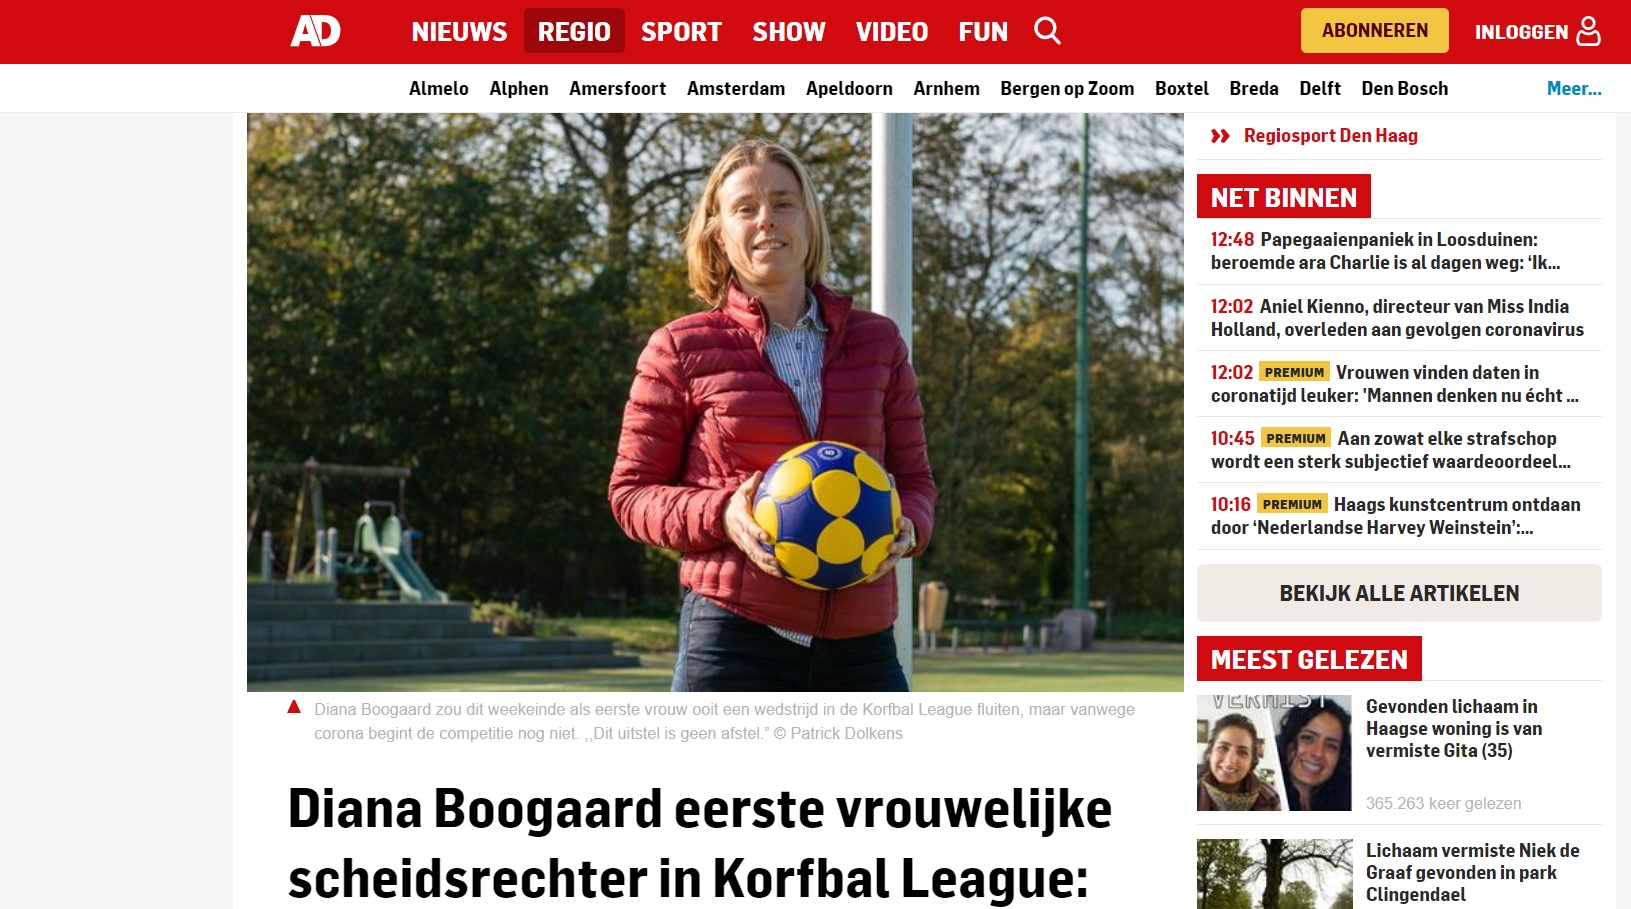 Korfbal (League) in de media